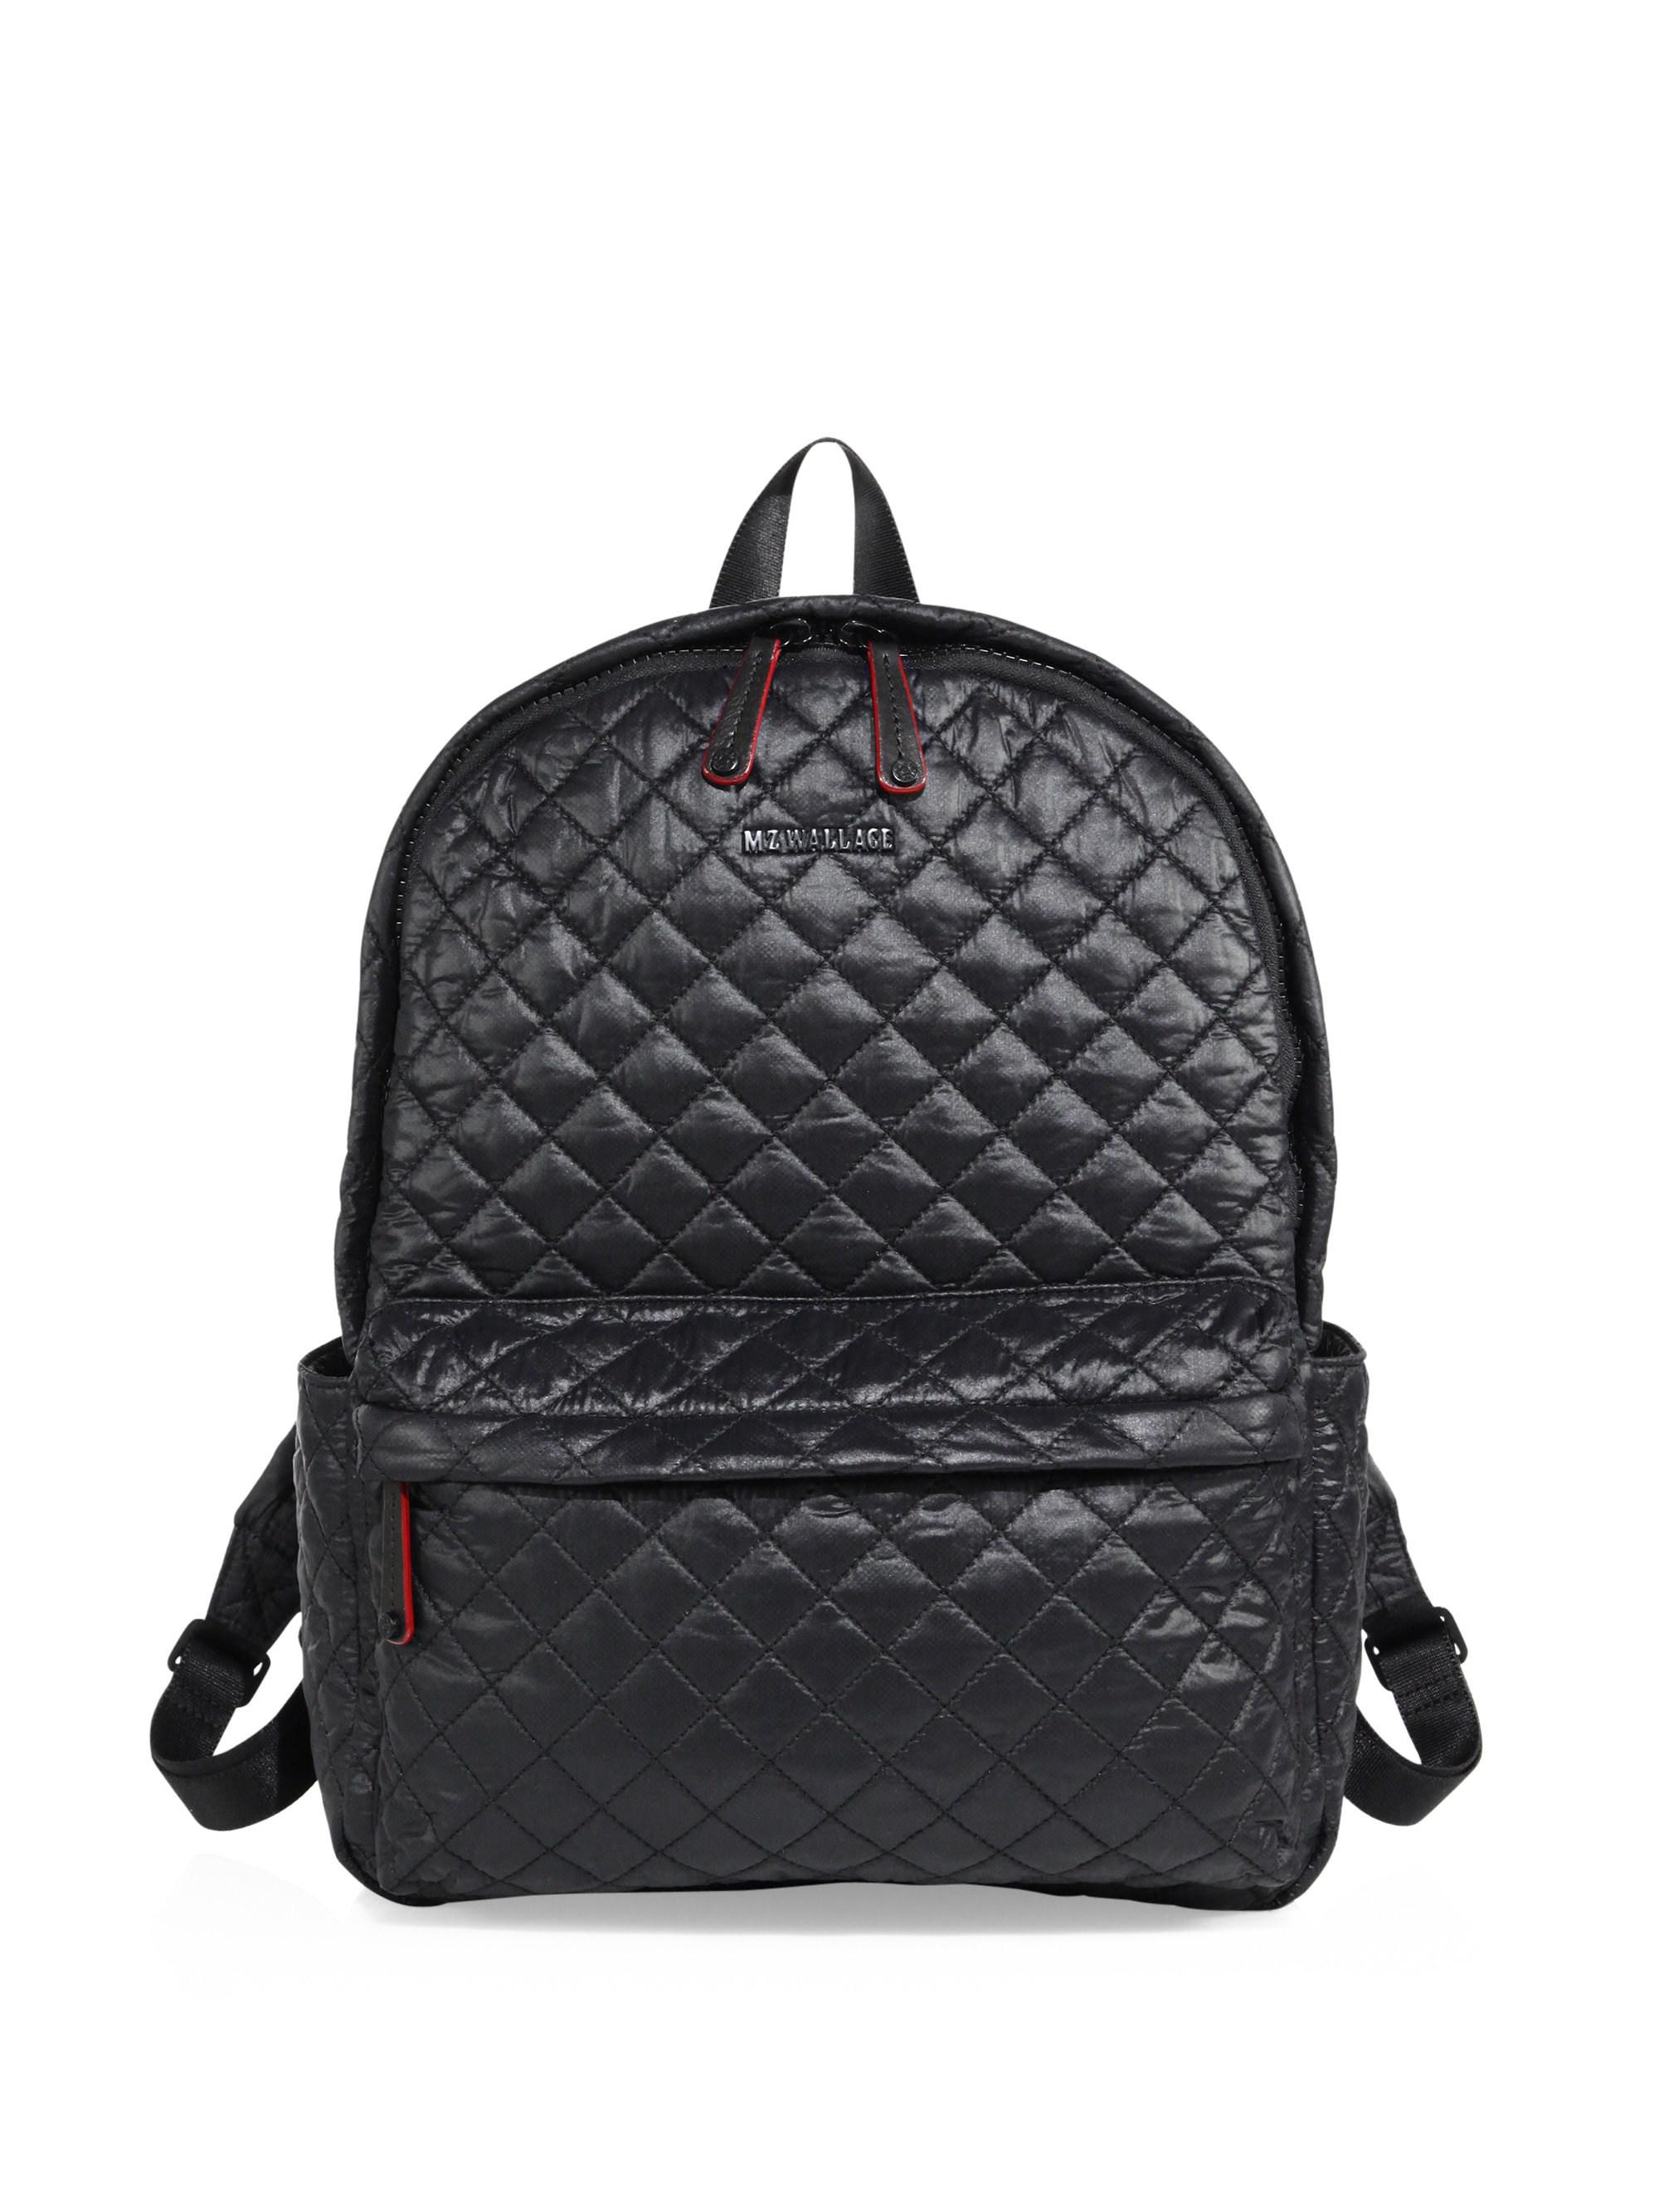 7975a029e009 Mz Wallace Oxford Small Quilted Nylon Backpack in Black - Lyst